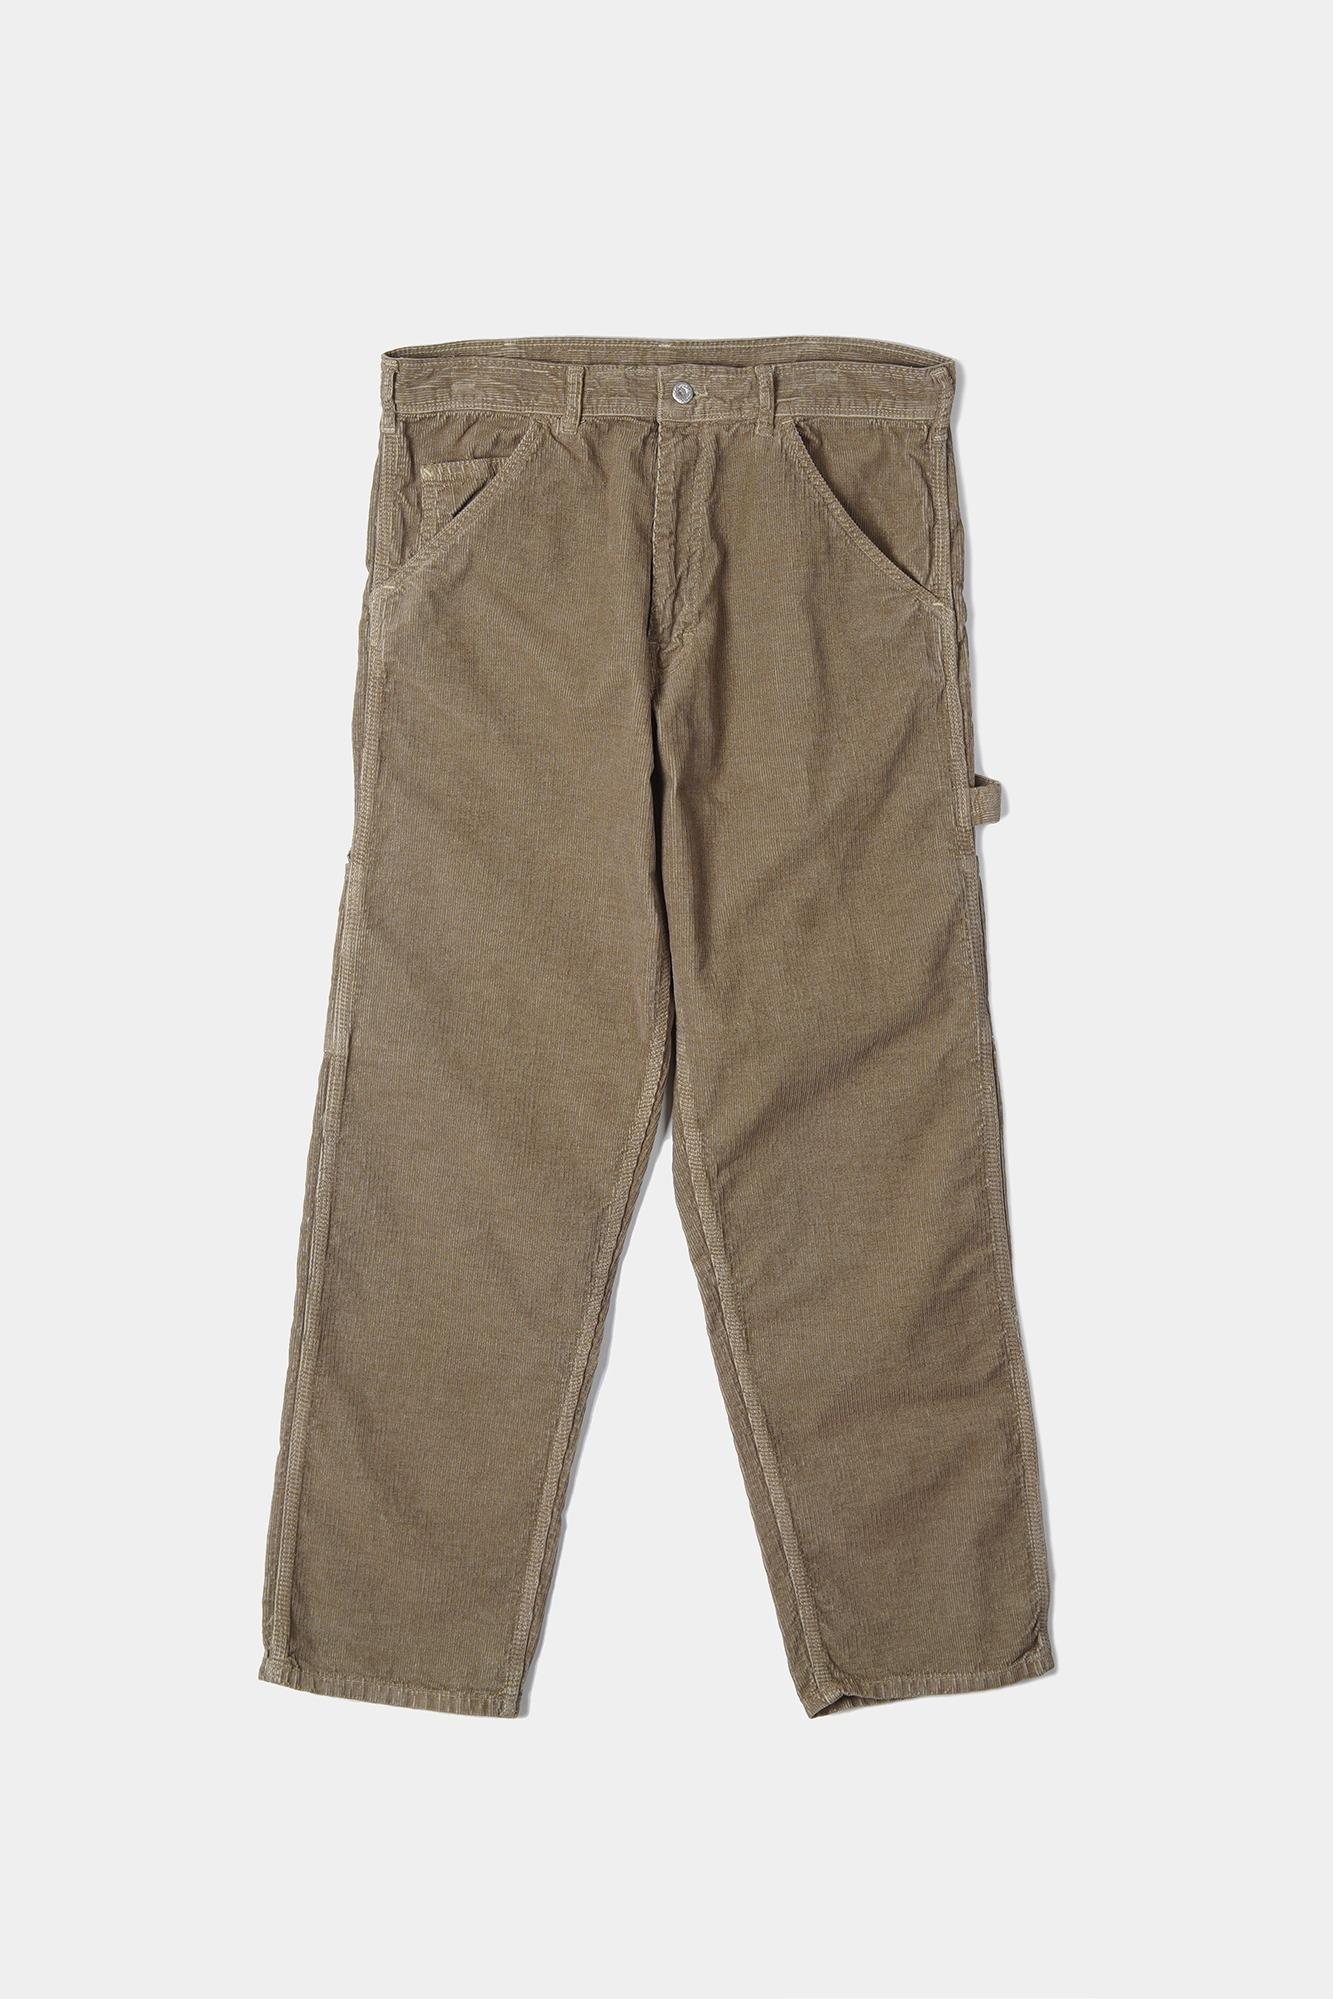 "STAN RAY OG Painter Pants Cord ""Khaki Cord"""